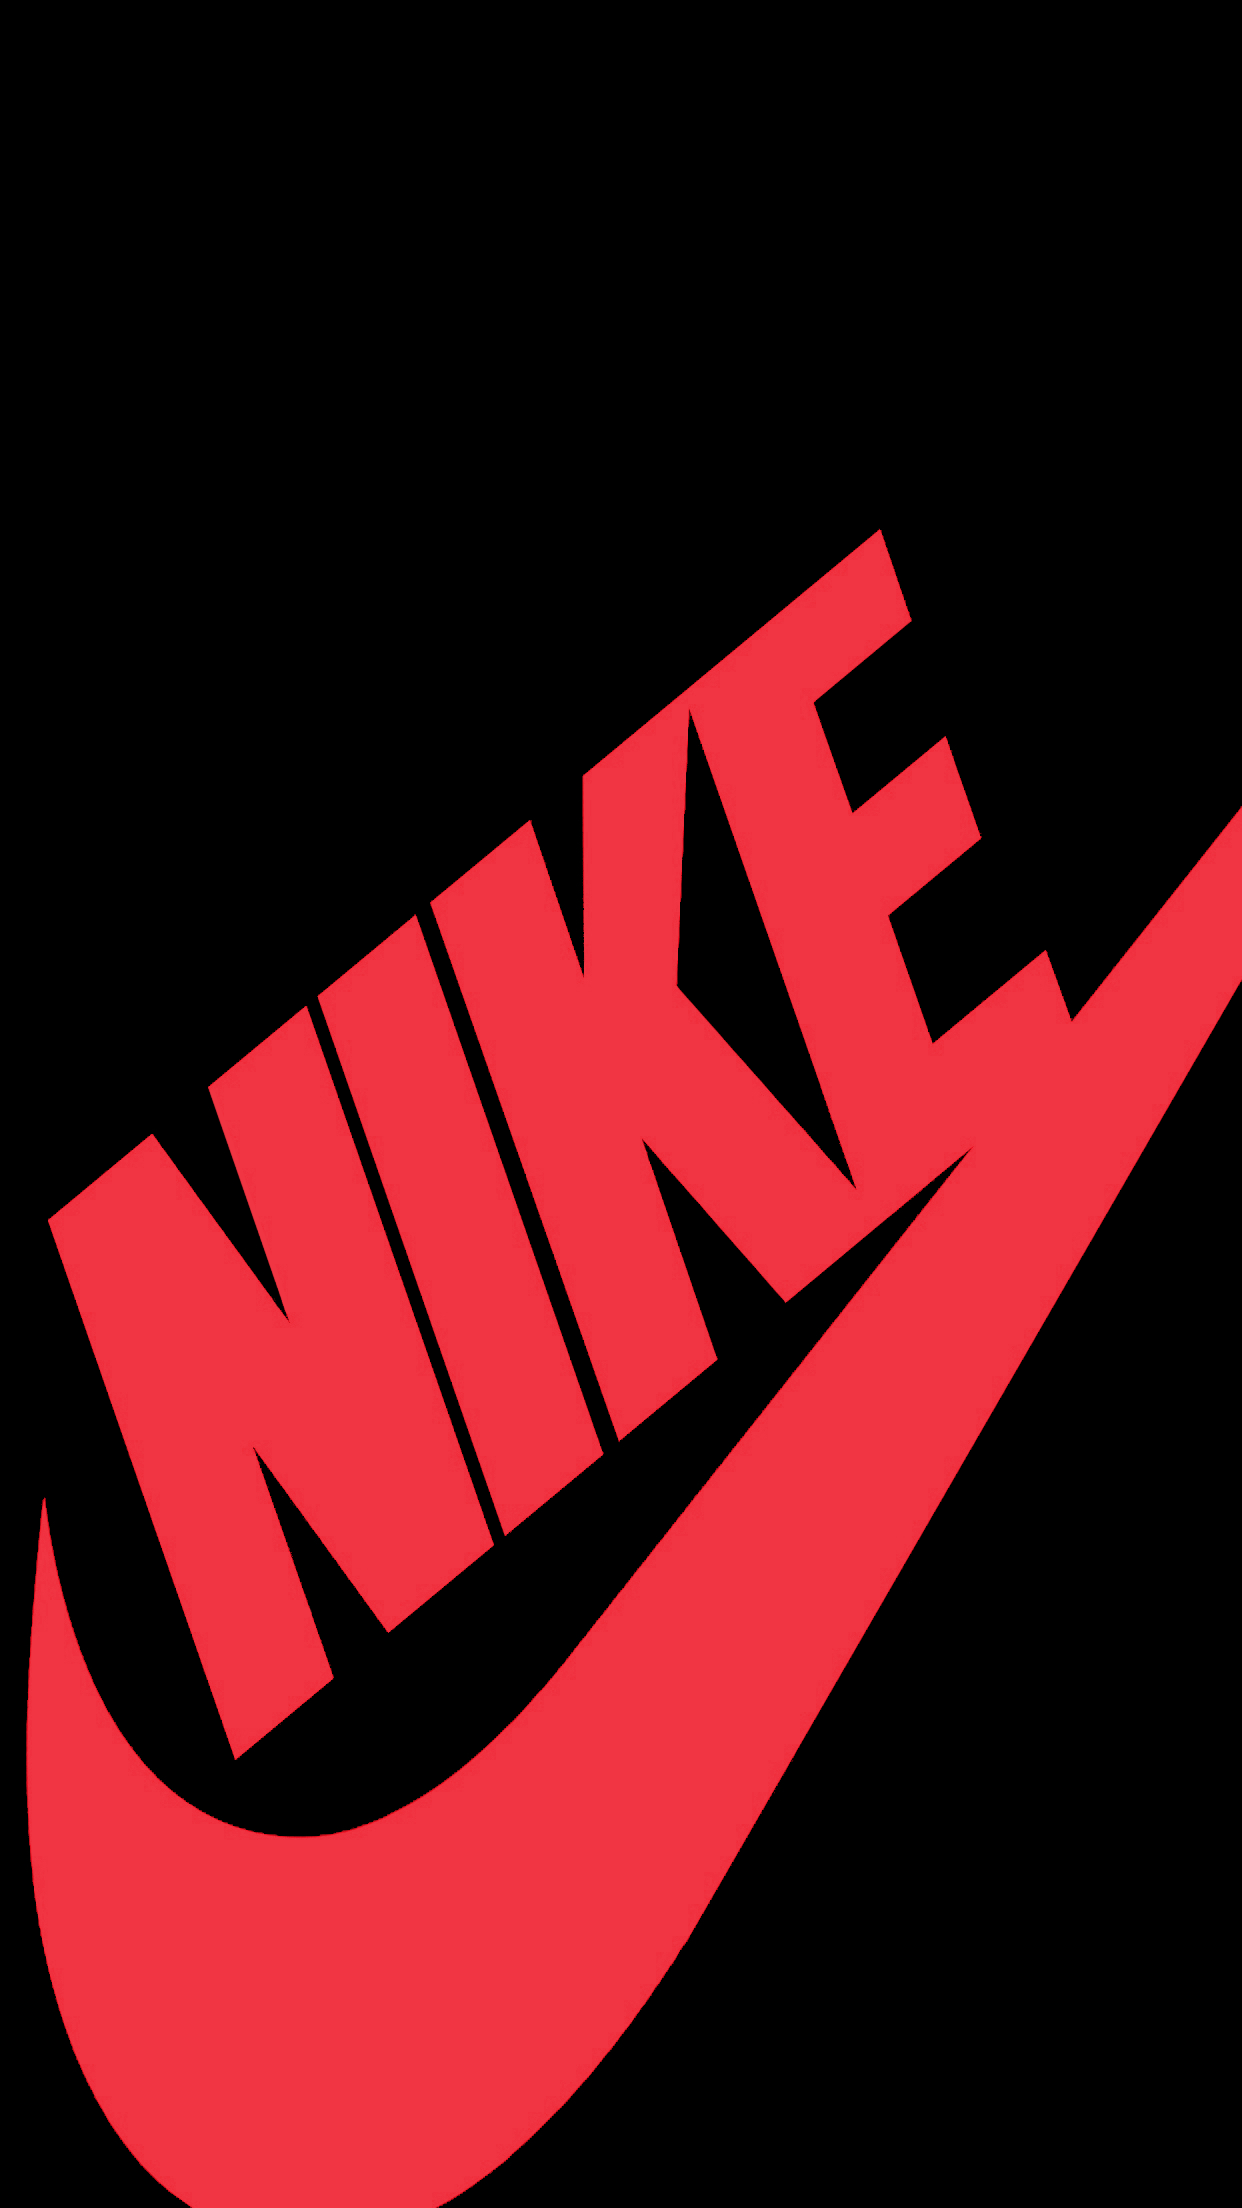 Nike Check iPhone Wallpaper